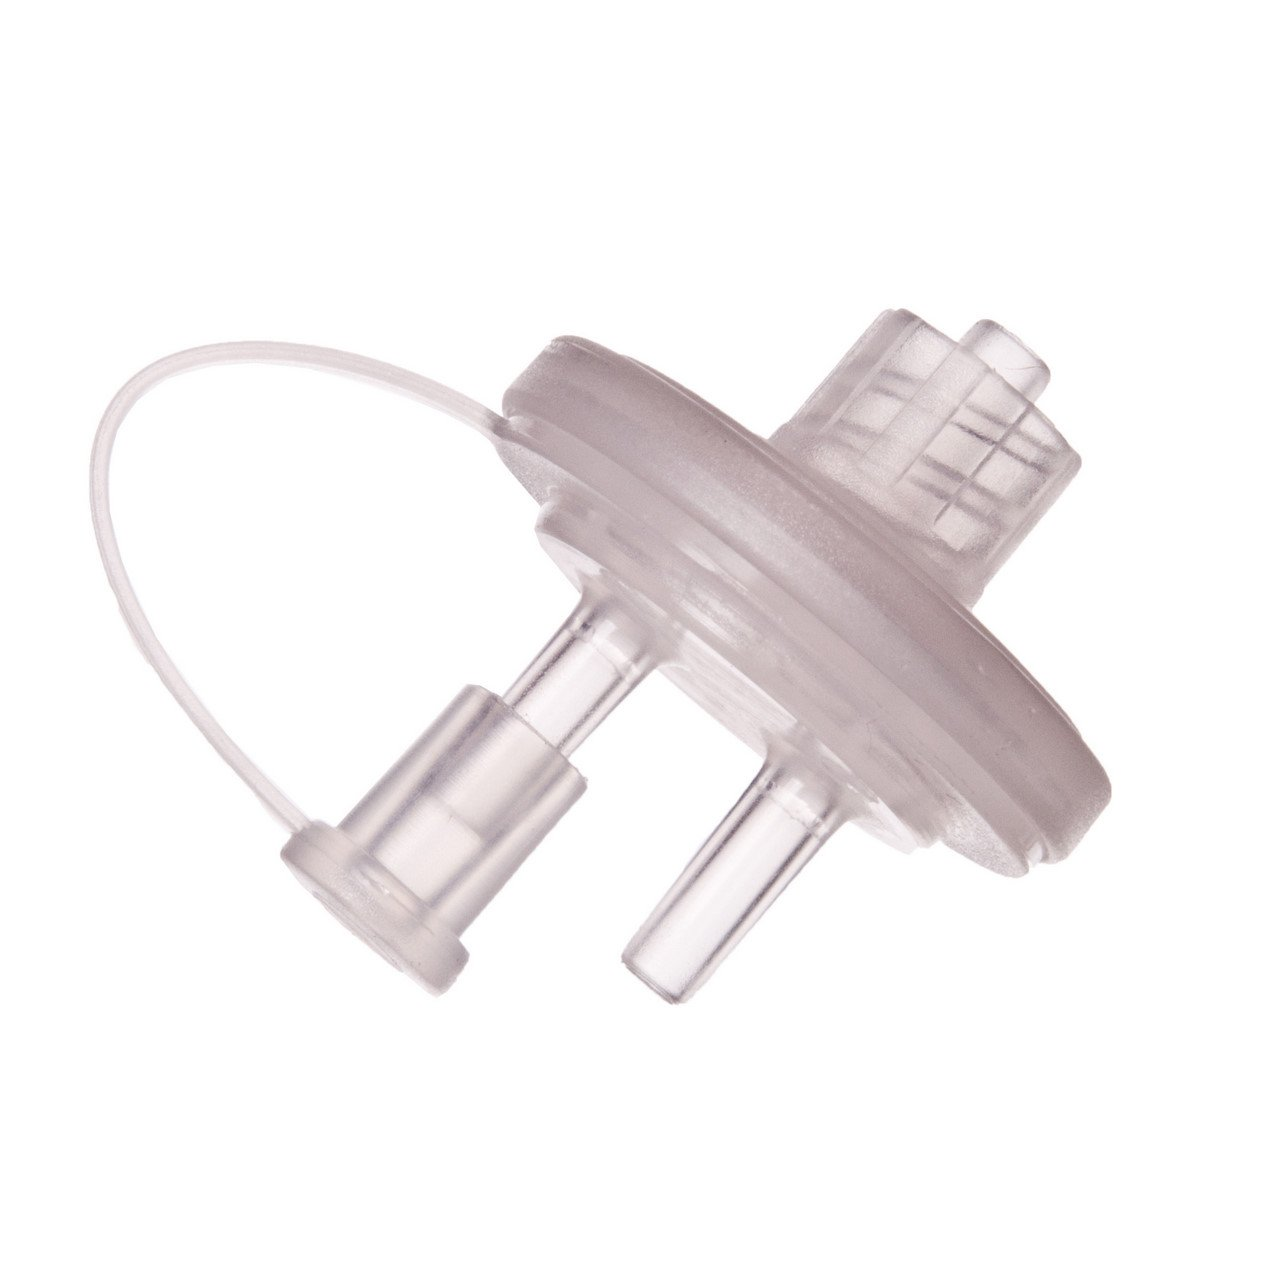 Hygeia Bacteriostatic Filter Replacement